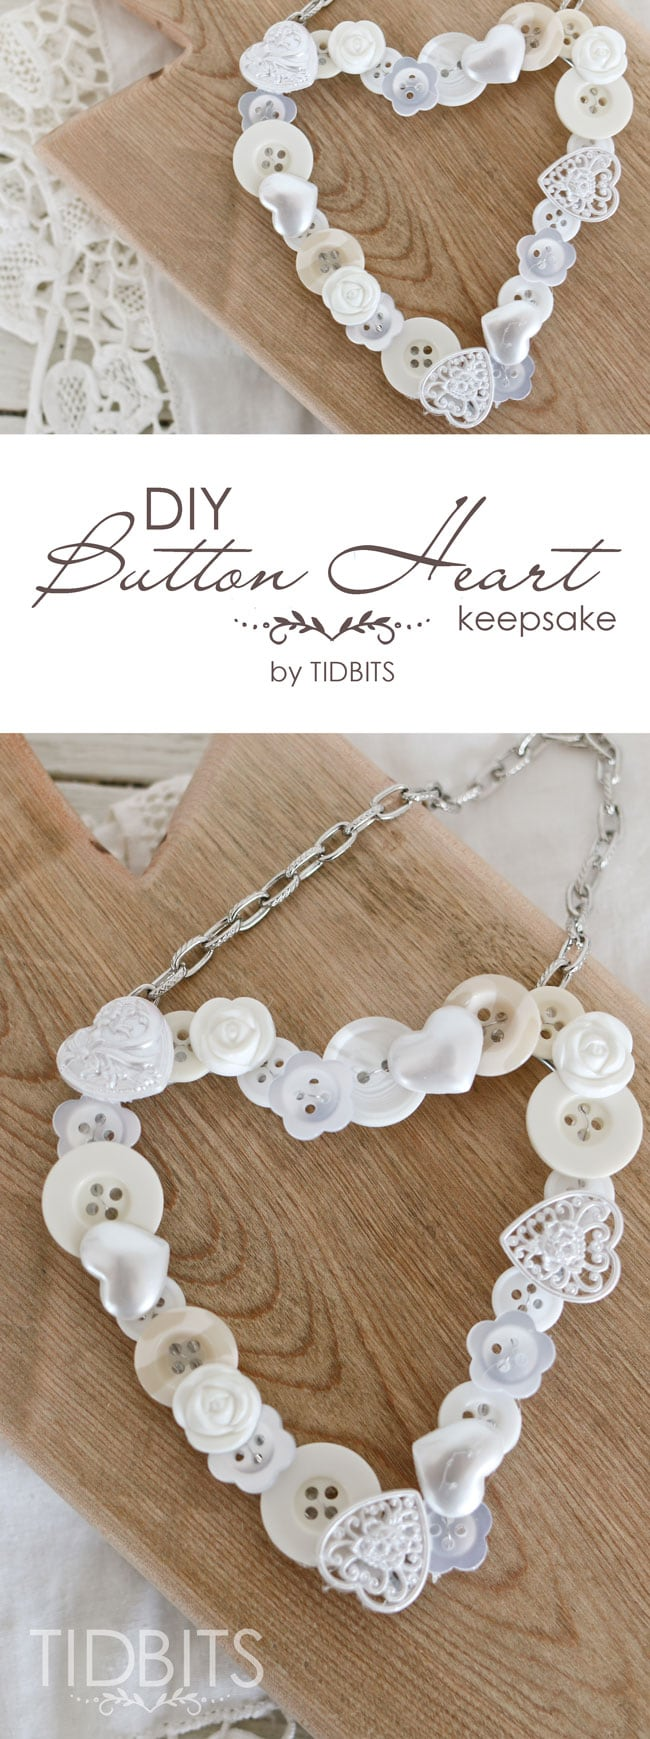 DIY Button Heart.  A sweet keepsake and simple craft to make.